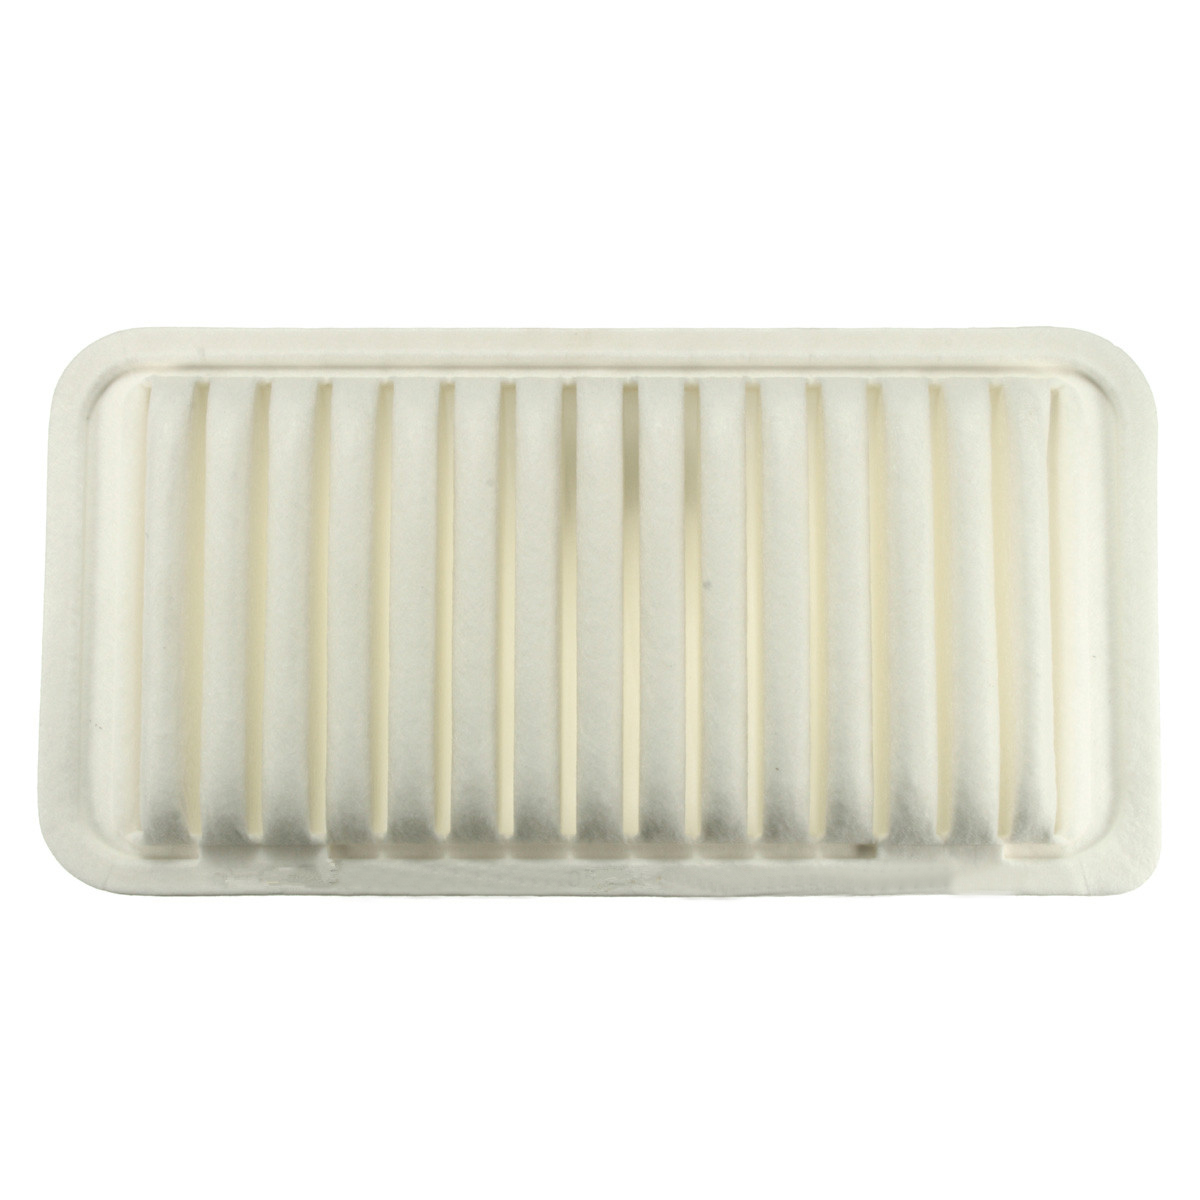 Car Engine Air Filter For Toyota Corolla 2003-2008 for Matrix 2005-2010 17801-22020Car Engine Air Filter For Toyota Corolla 2003-2008 for Matrix 2005-2010 17801-22020